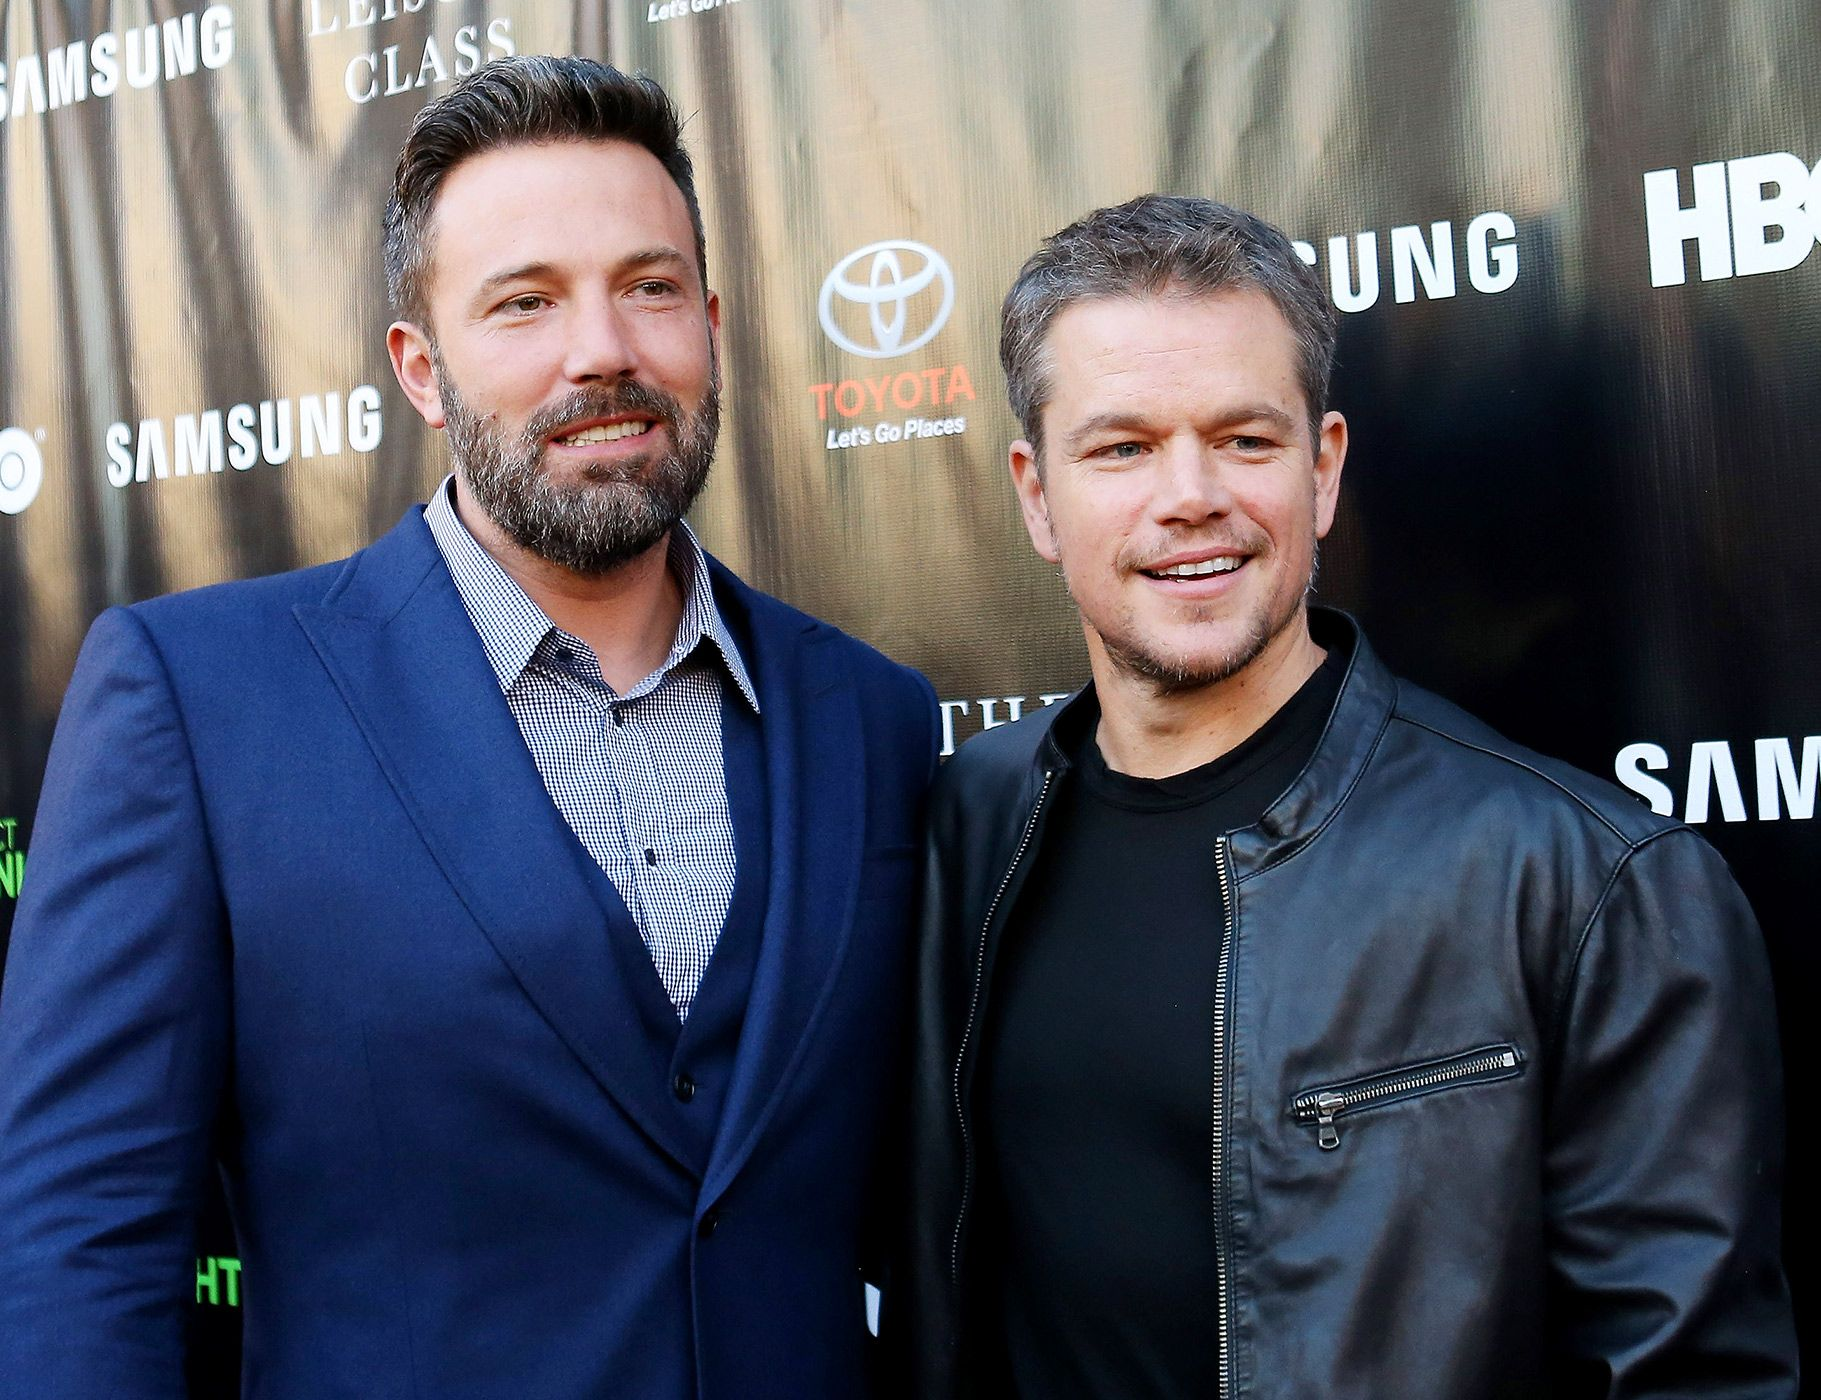 Matt Damon It Was Painful To Be Ben Affleck S Friend During J Lo Era Matt Damon Ben Affleck The Hollywood Reporter